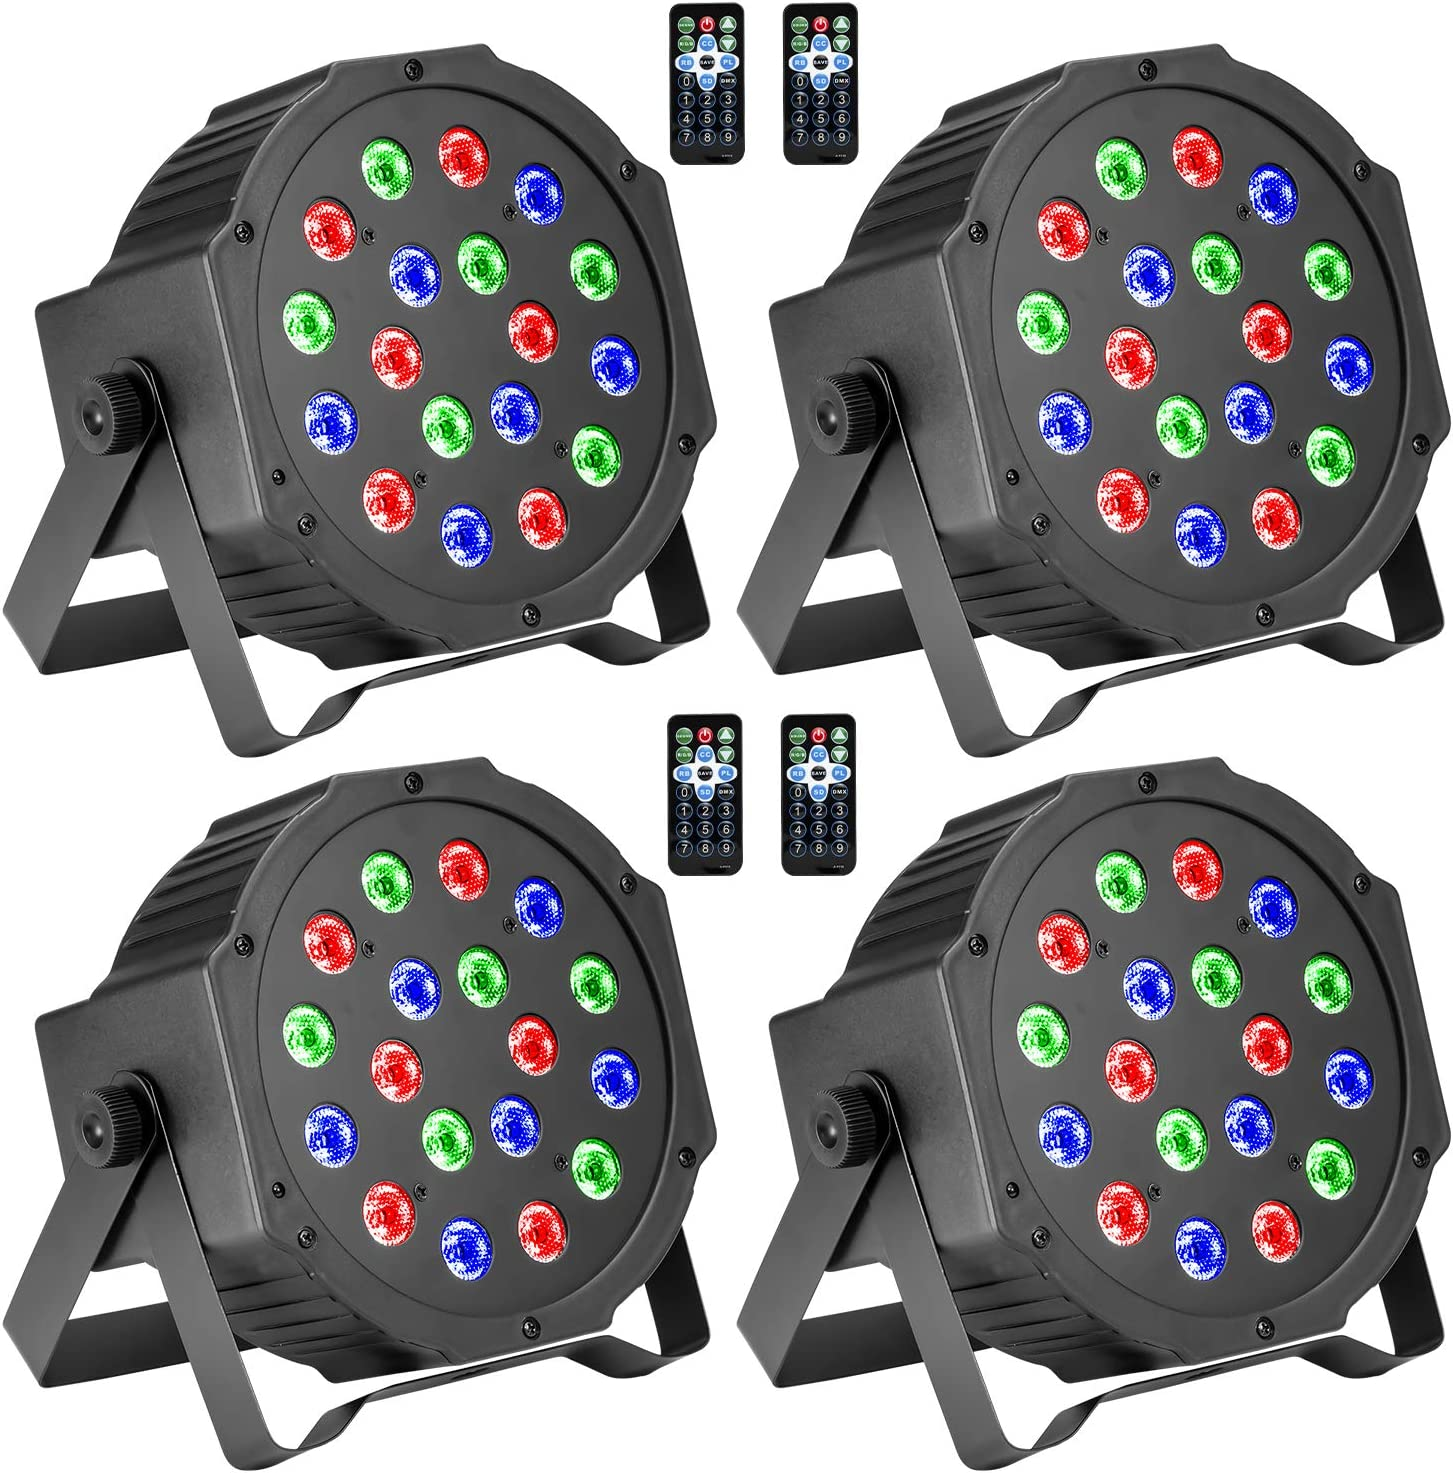 Stage Lights 2nd Version Sound Activated RGBW LED DJ Lights Mixed Beam Lights Effects with Remote Control DMX 512 Controllable Party Lights for Wedding Birthday Dance Party black 2